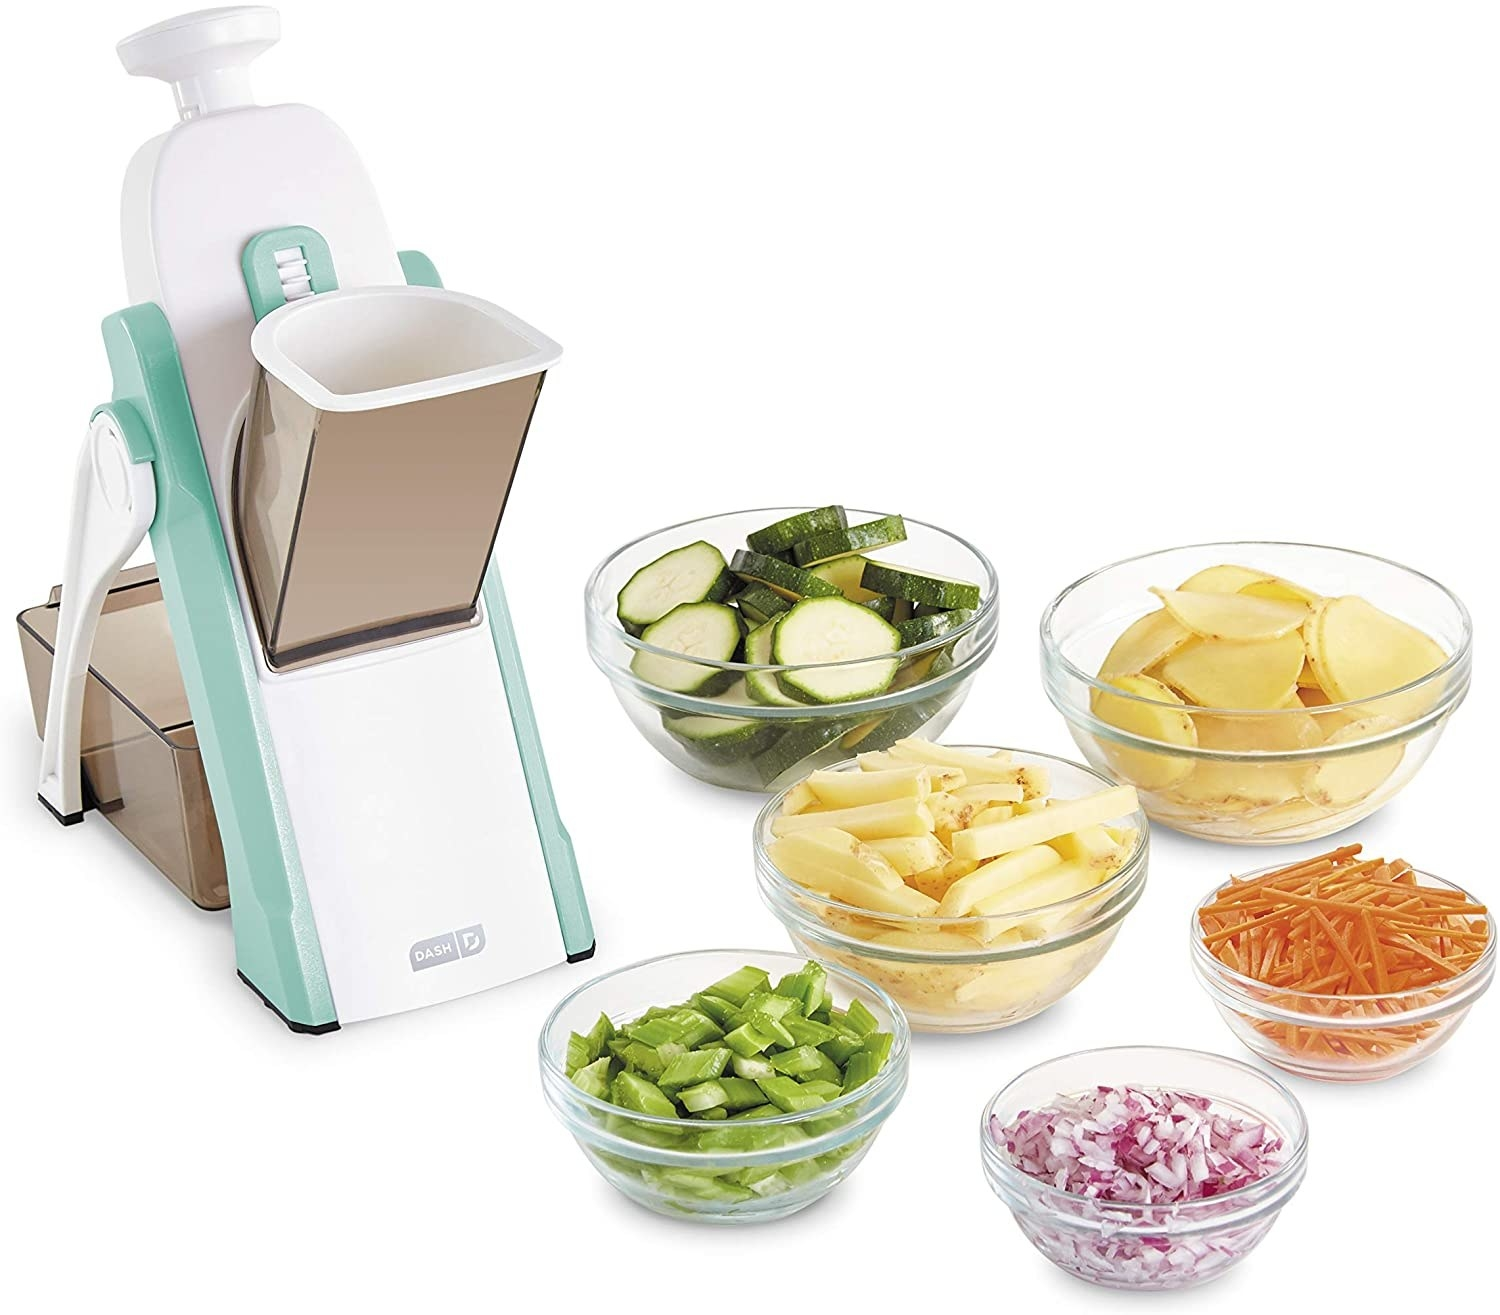 An aqua mandoline-style veggie slicer with six bowls of chopped vegetables next to it